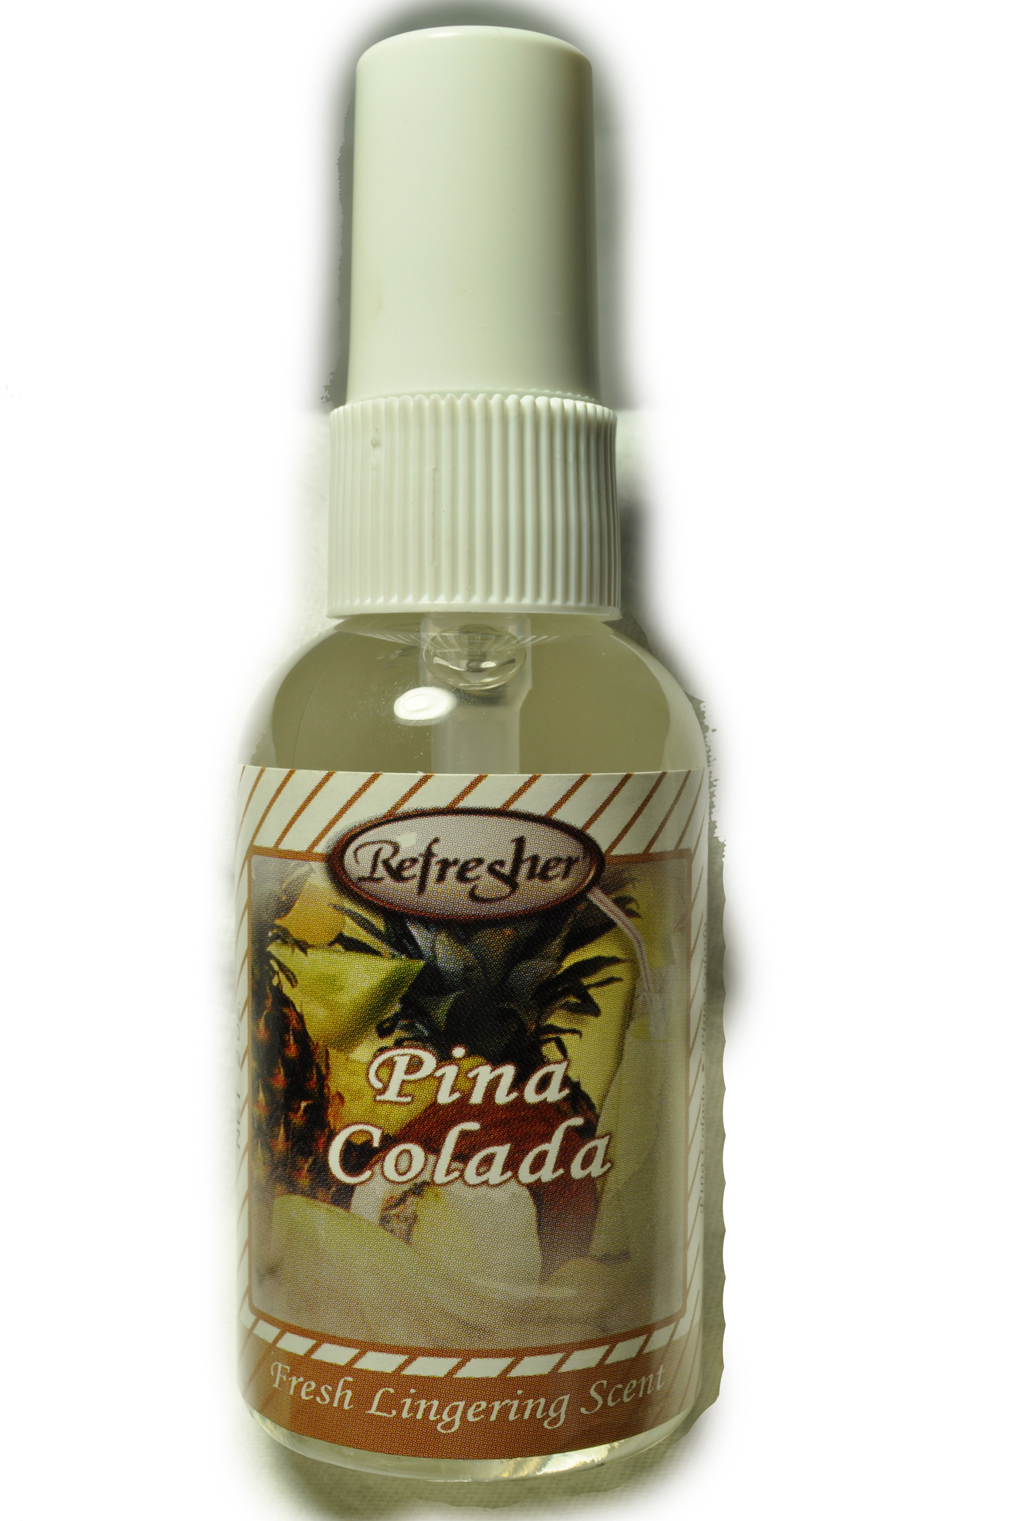 pina colada refresher spray 2oz 34 0143 06